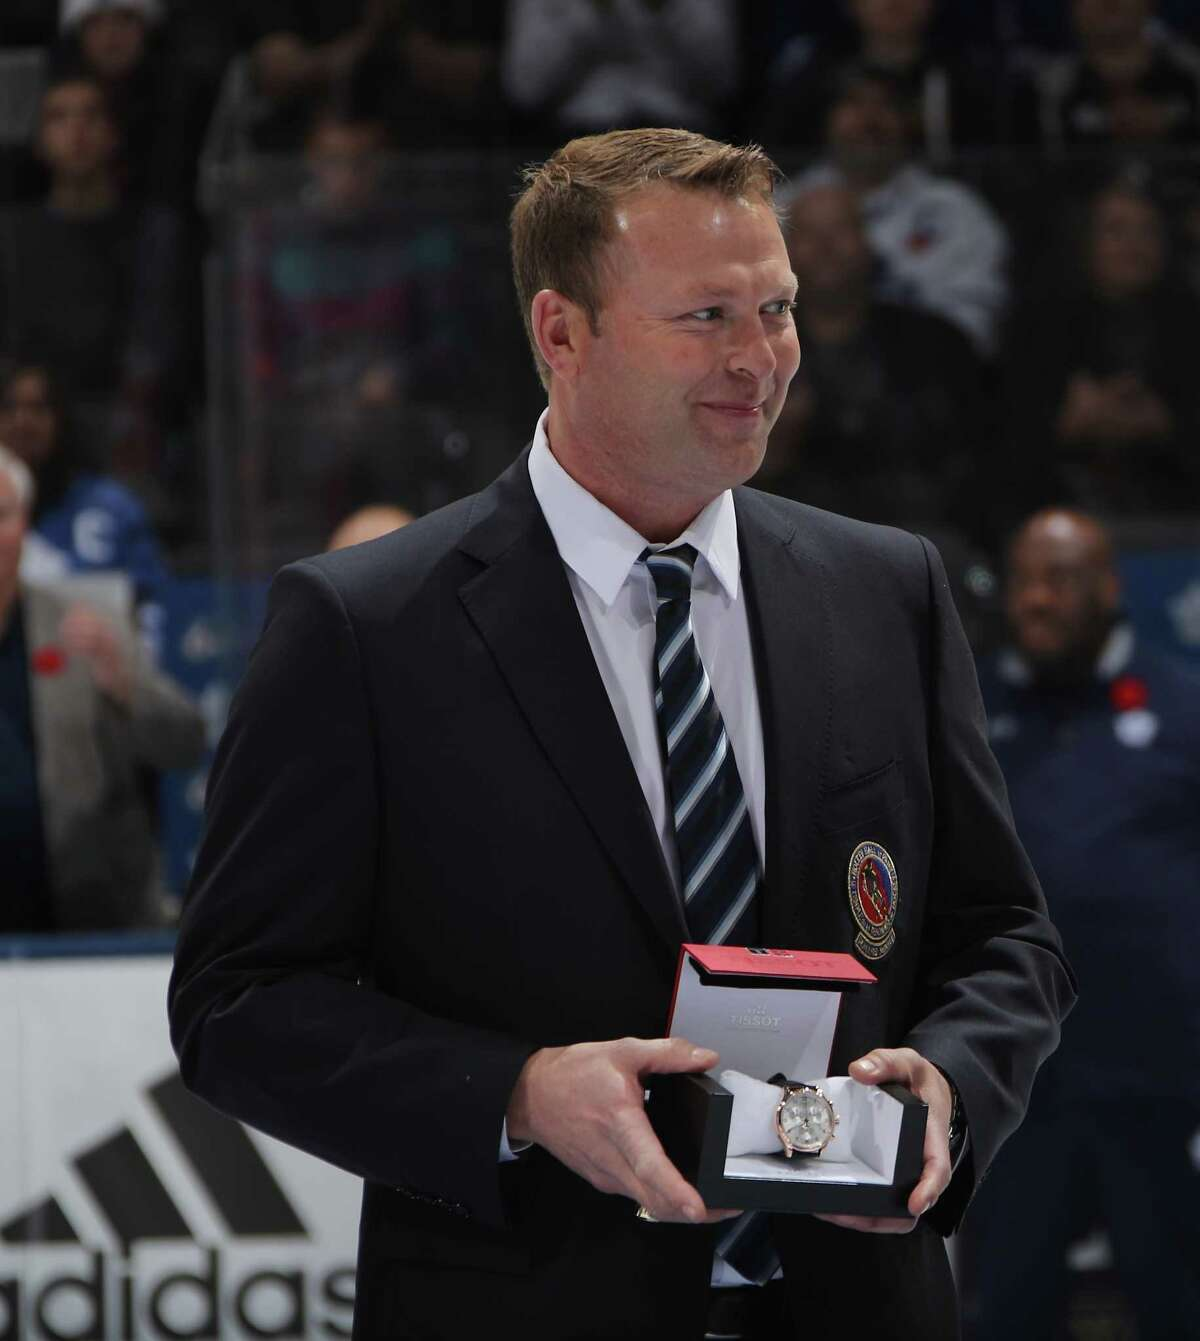 TORONTO, ONTARIO - NOVEMBER 11: Hall of Fame inductee Martin Brodeur is honored prior to the 2018 Hockey Hall of Fame Legends Classic Game at the Air Canada Centre on November 11, 2018 in Toronto, Ontario, Canada. (Photo by Bruce Bennett/Getty Images)